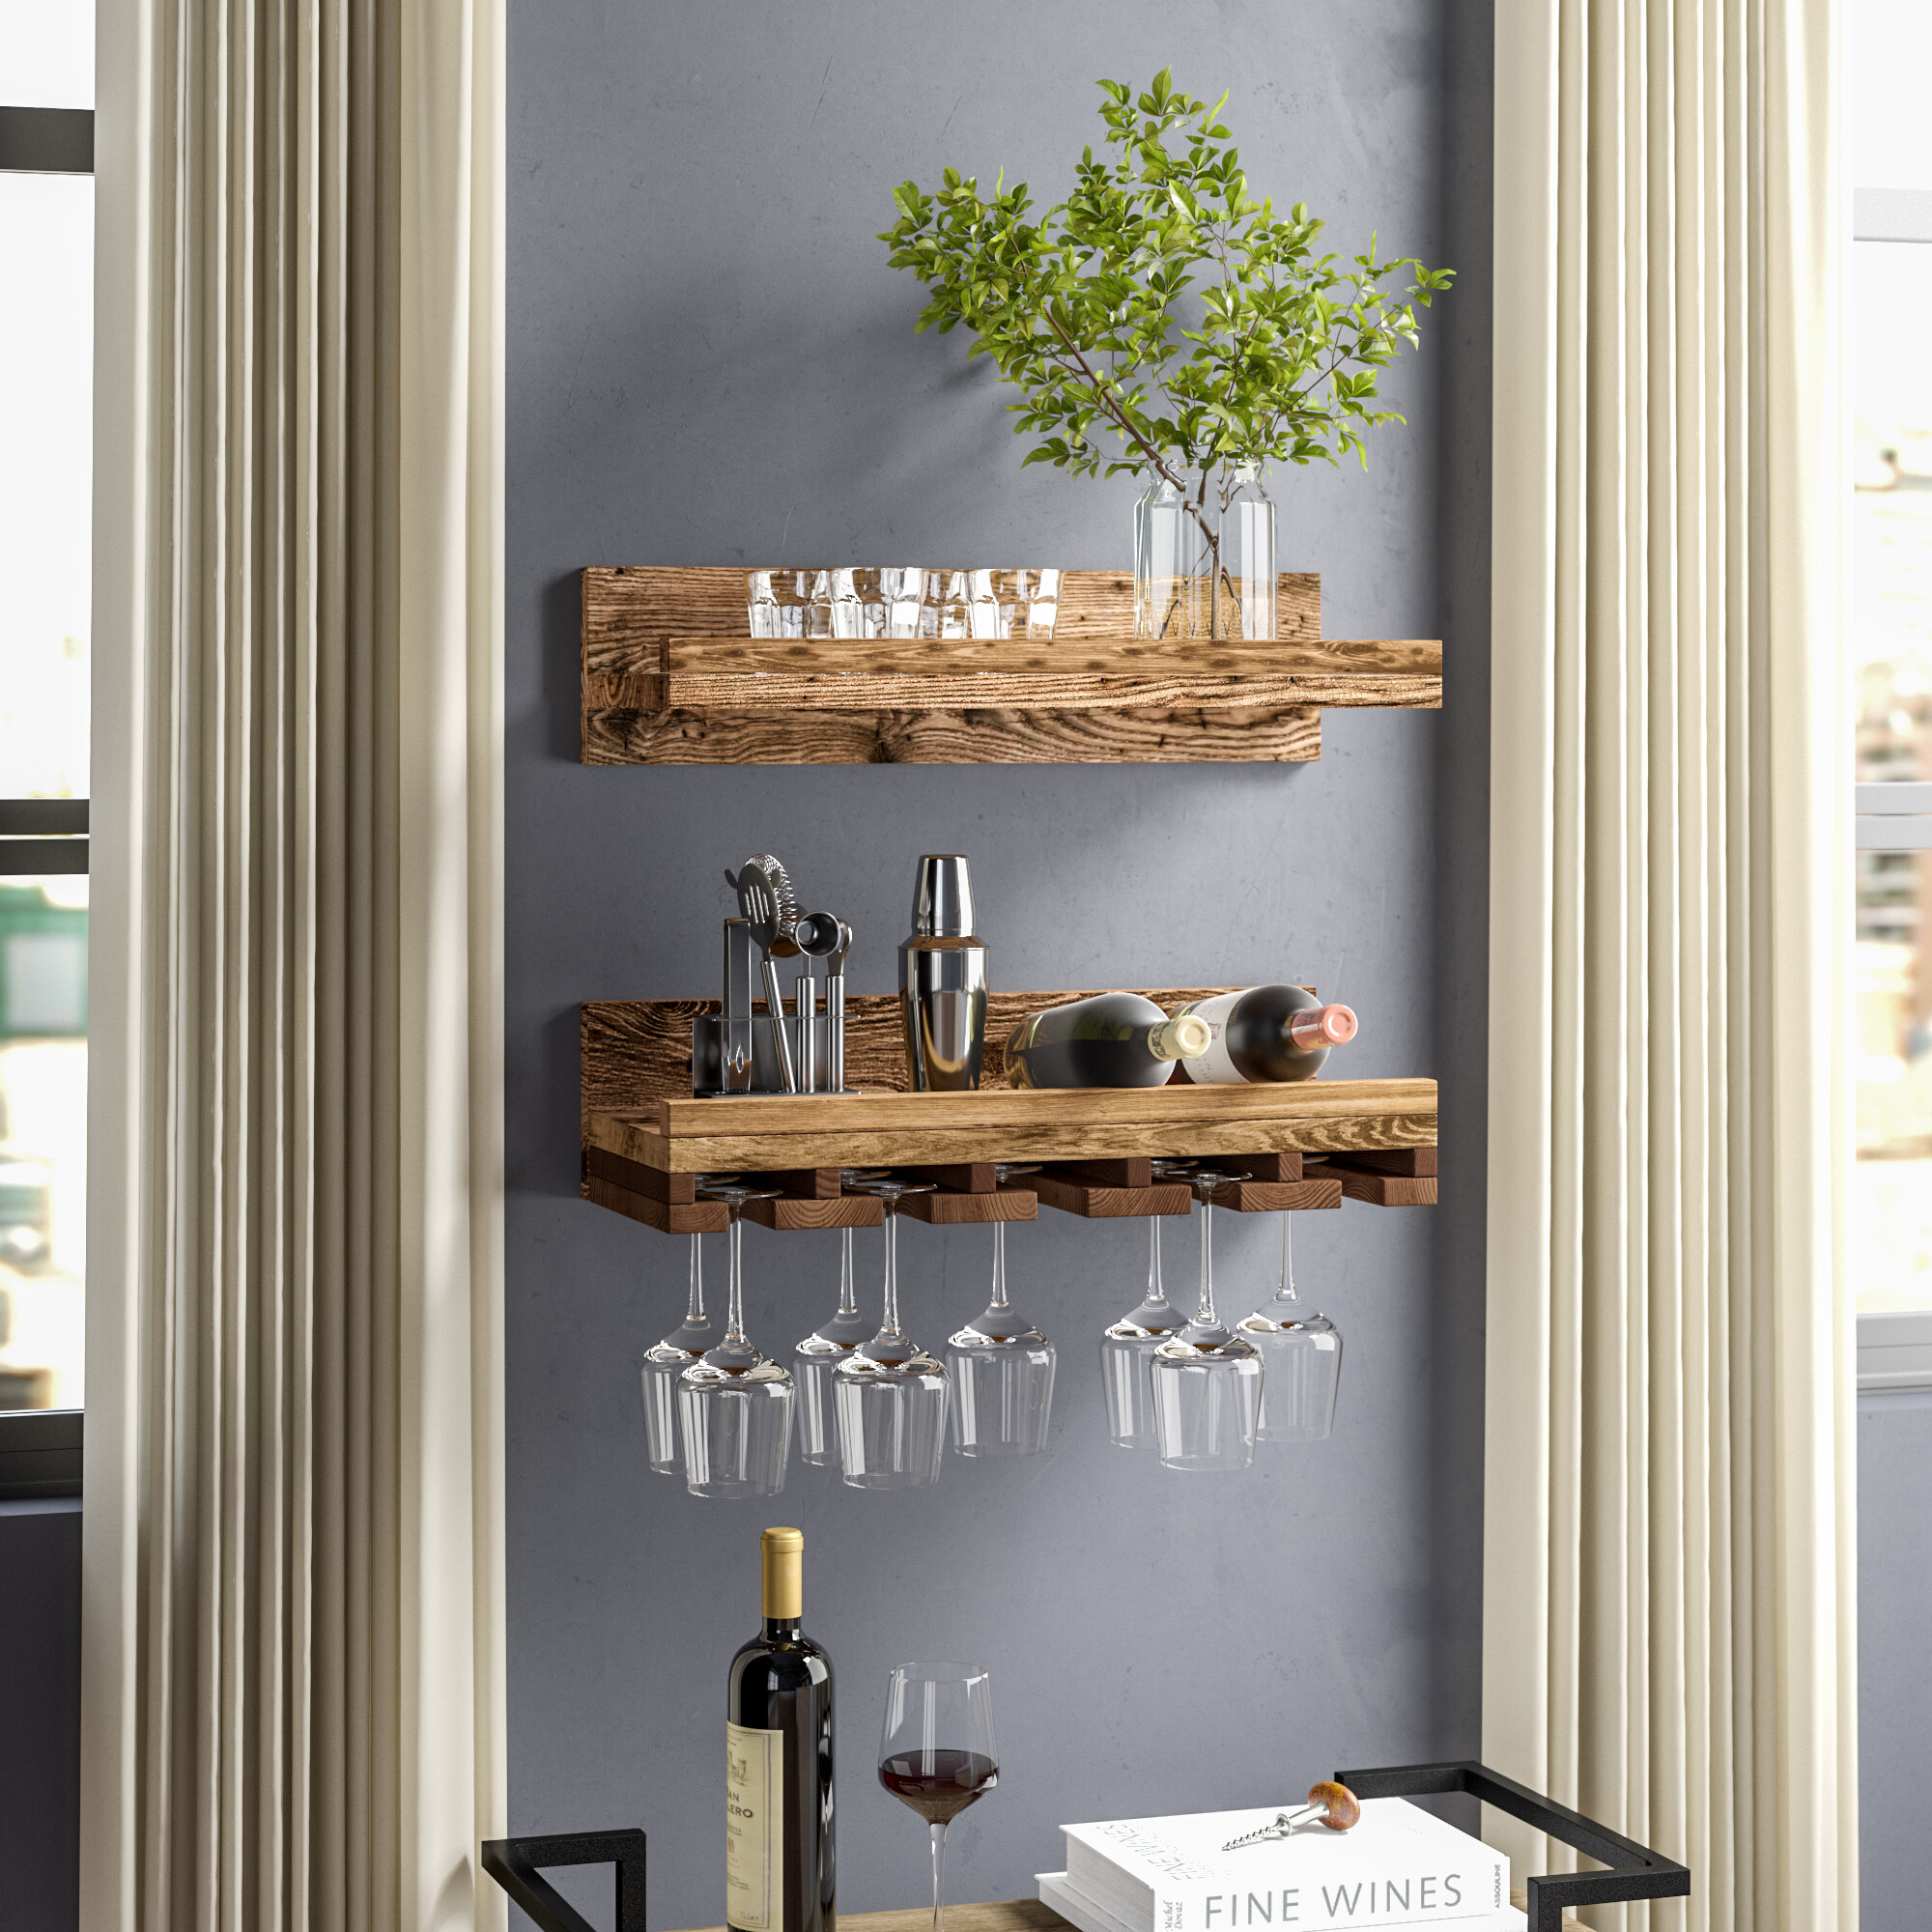 Trent Austin Design Bernon Rustic Wall Mounted Wine Gl Rack ... on rustic designer kitchens, rustic home kitchens, living rooms ideas, rustic open kitchens, rustic cabinet hardware, rustic lighting, rustic interior design, rustic galley kitchens, rustic living rooms, rustic style, rustic outdoor kitchens, rustic looking kitchens, rustic doors, rustic italian kitchens, rustic country kitchens, rustic farmhouse kitchens, rustic tin backsplash, rustic cottage kitchens,